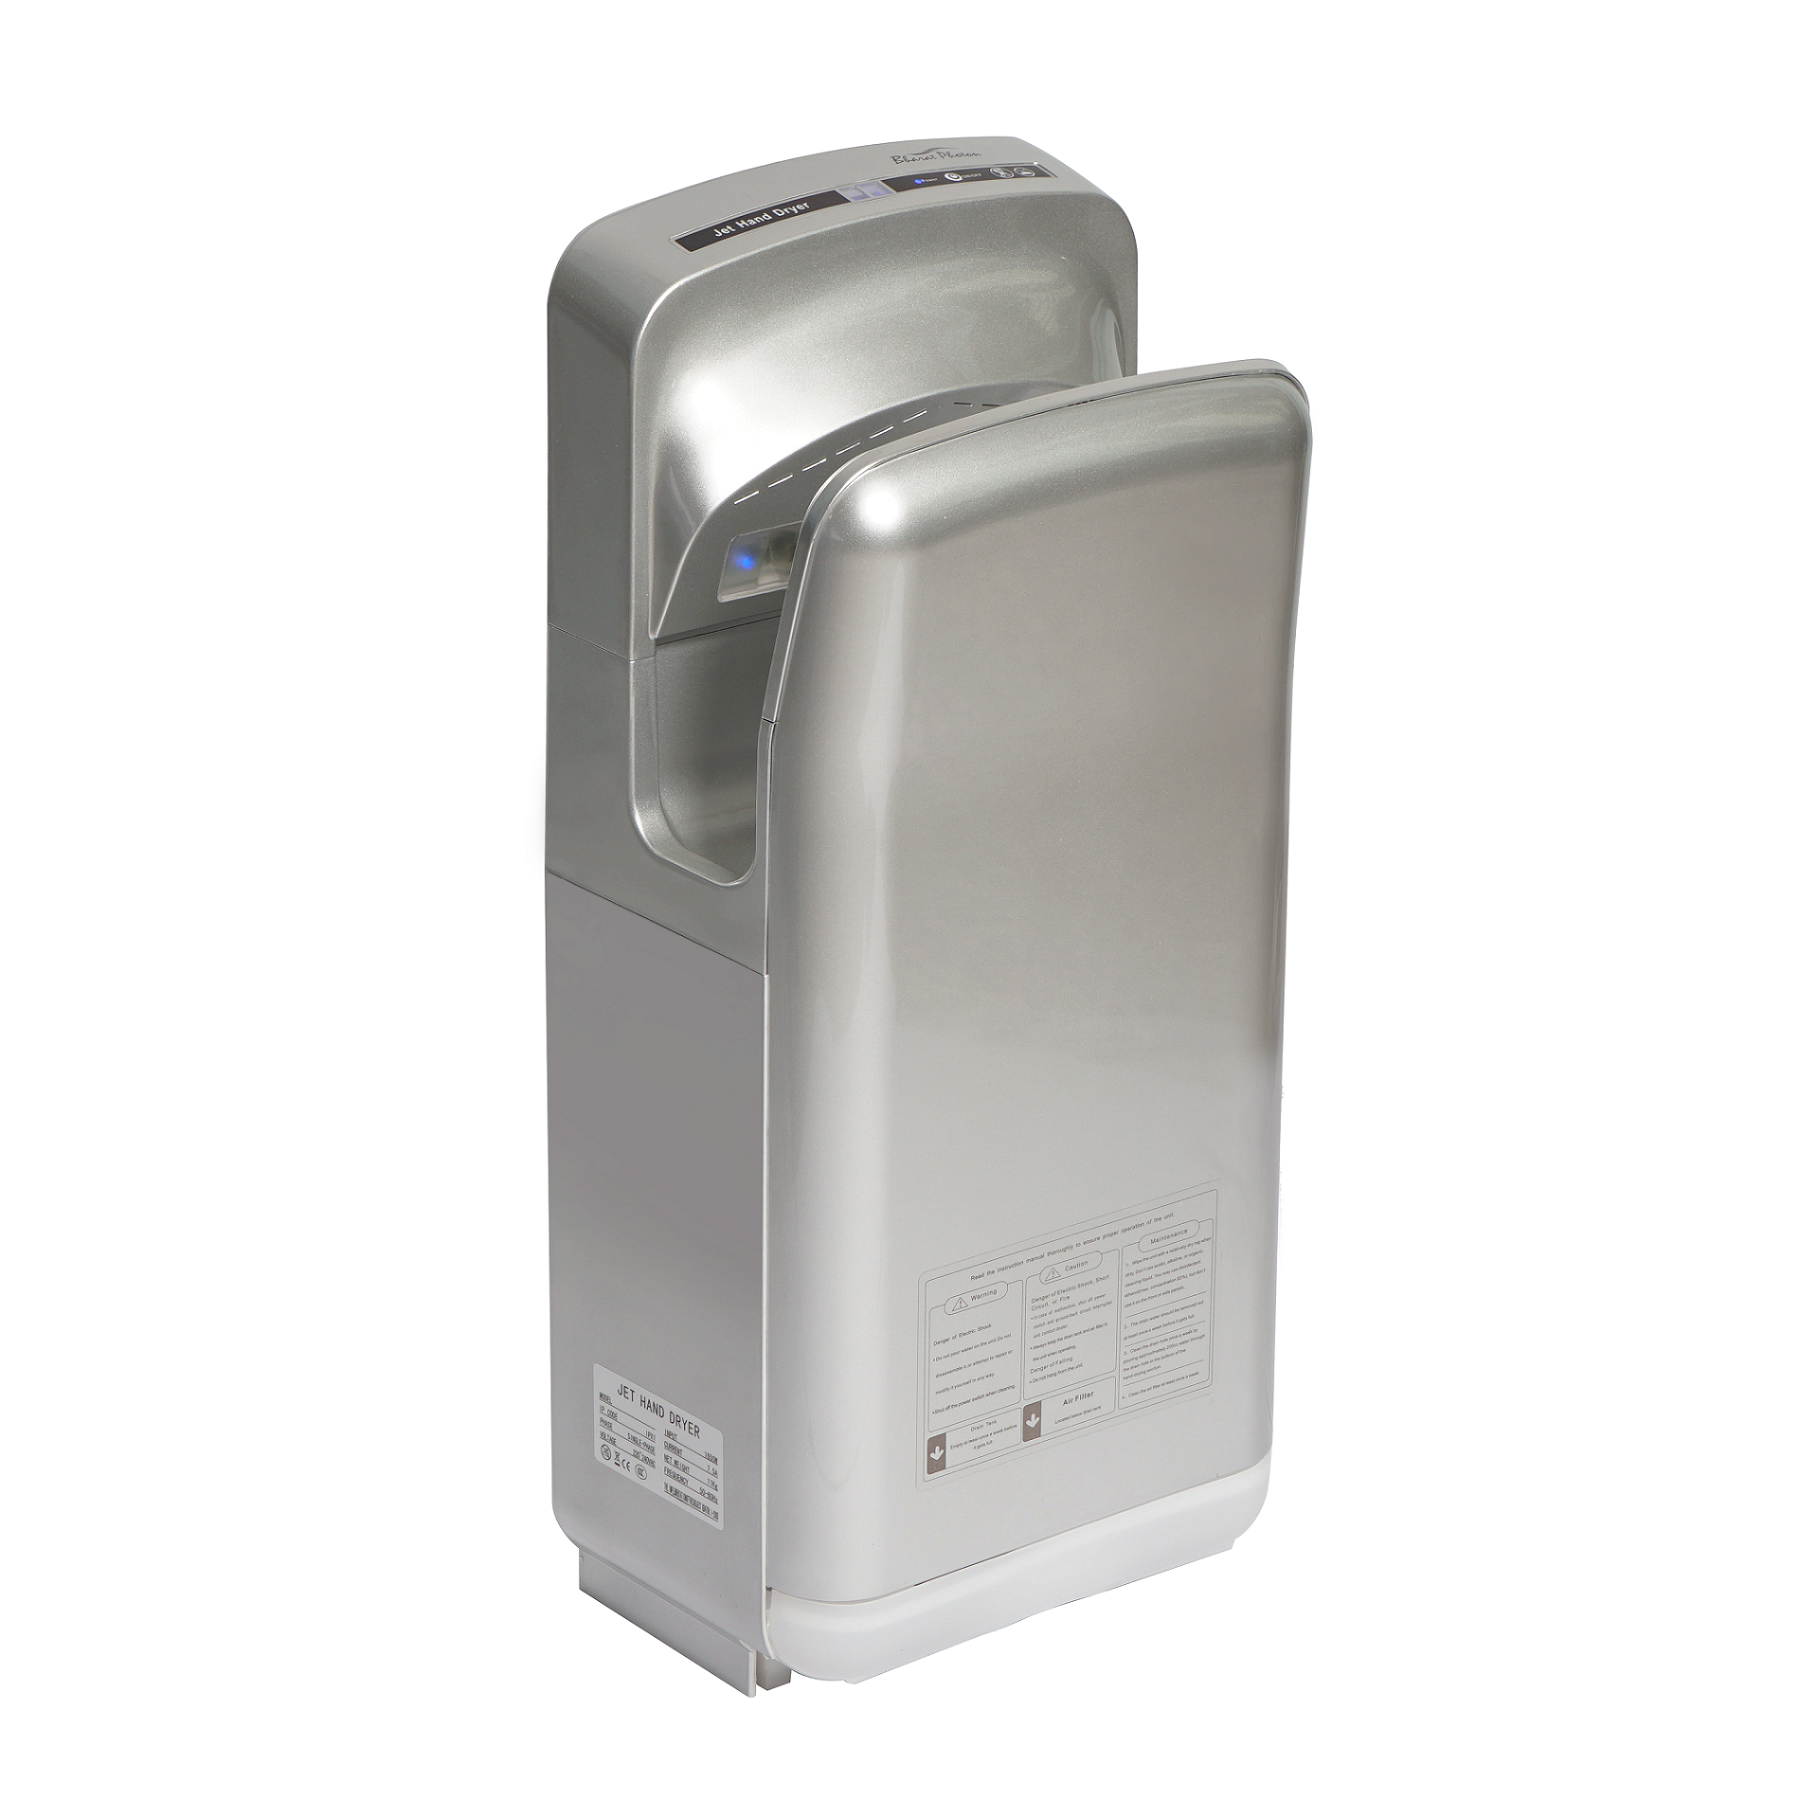 Get Air Jet Hand Dryer and High Speed Jet Hand Dryer at